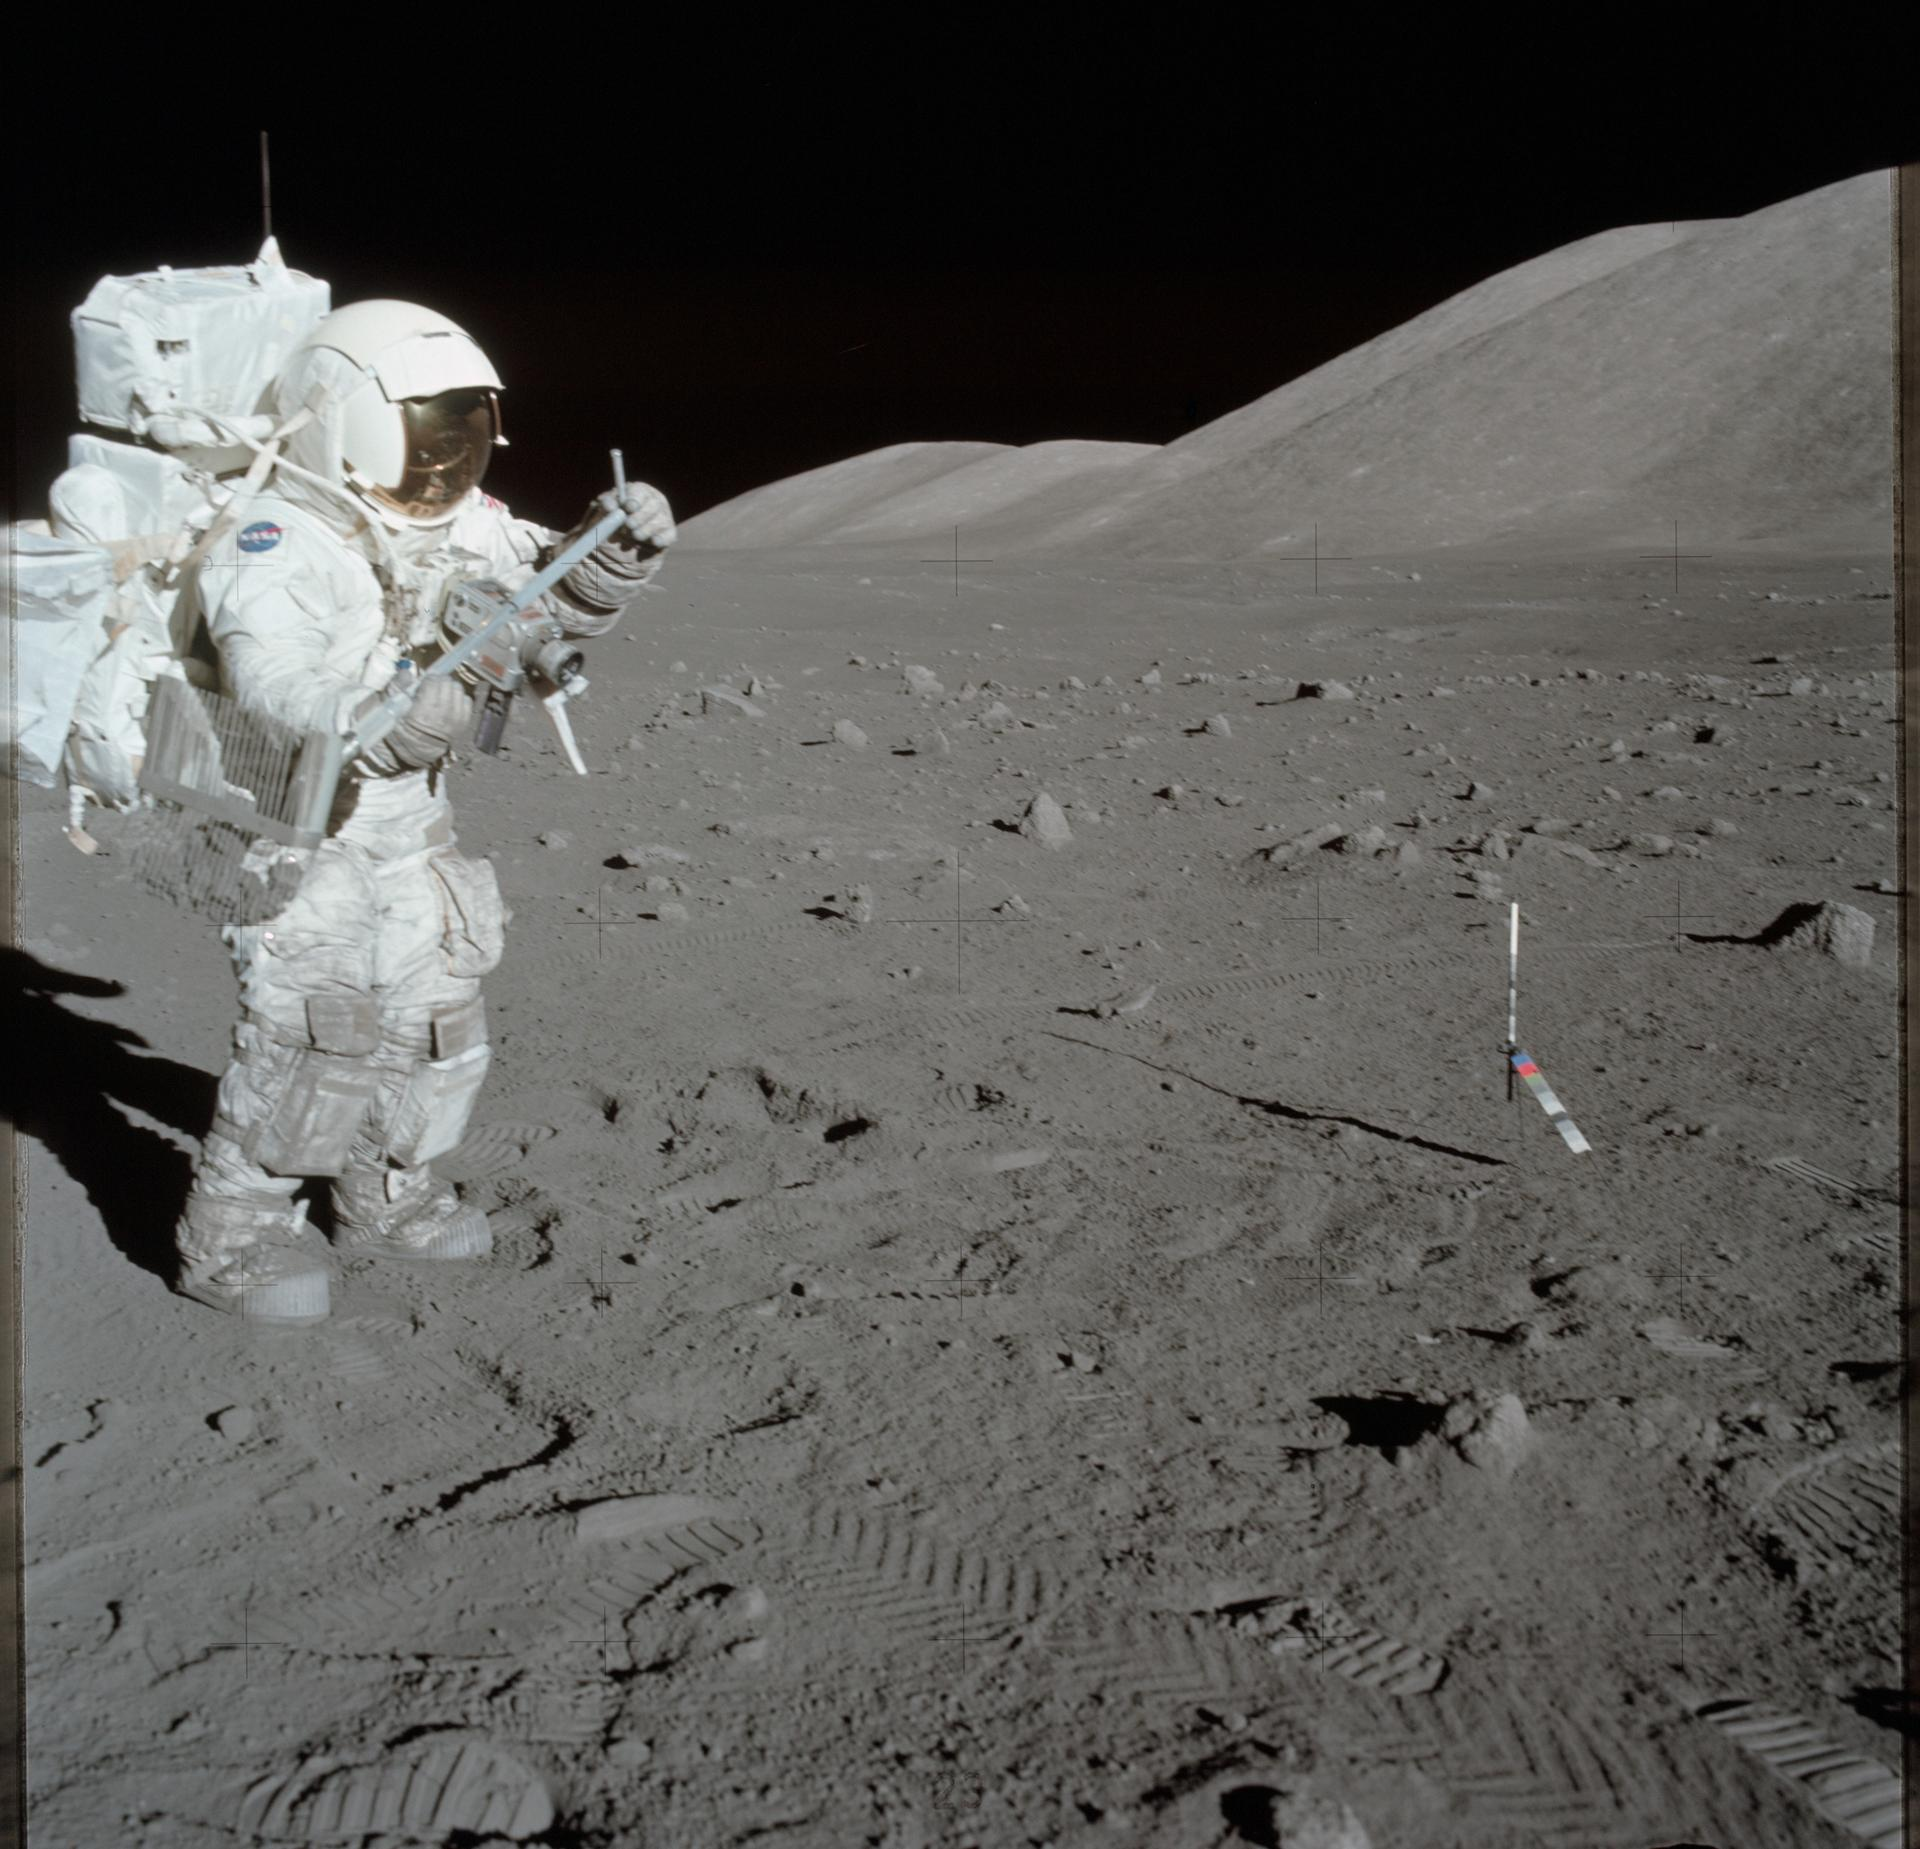 AS17-134-20426 (11 Dec. 1972) --- Scientist-astronaut Harrison H. Schmitt collects lunar rake samples at Station 1 during the first Apollo 17 extravehicular activity (EVA) at the Taurus-Littrow landing site. This picture was taken by astronaut Eugene A. Cernan, Apollo 17 commander. Schmitt is the lunar module pilot. The Lunar Rake, an Apollo Lunar Geology Hand Tool, is used to collect discrete samples of rocks and rock chips ranging in size from one-half inch (1.3 cm) to one inch (2.5 cm).